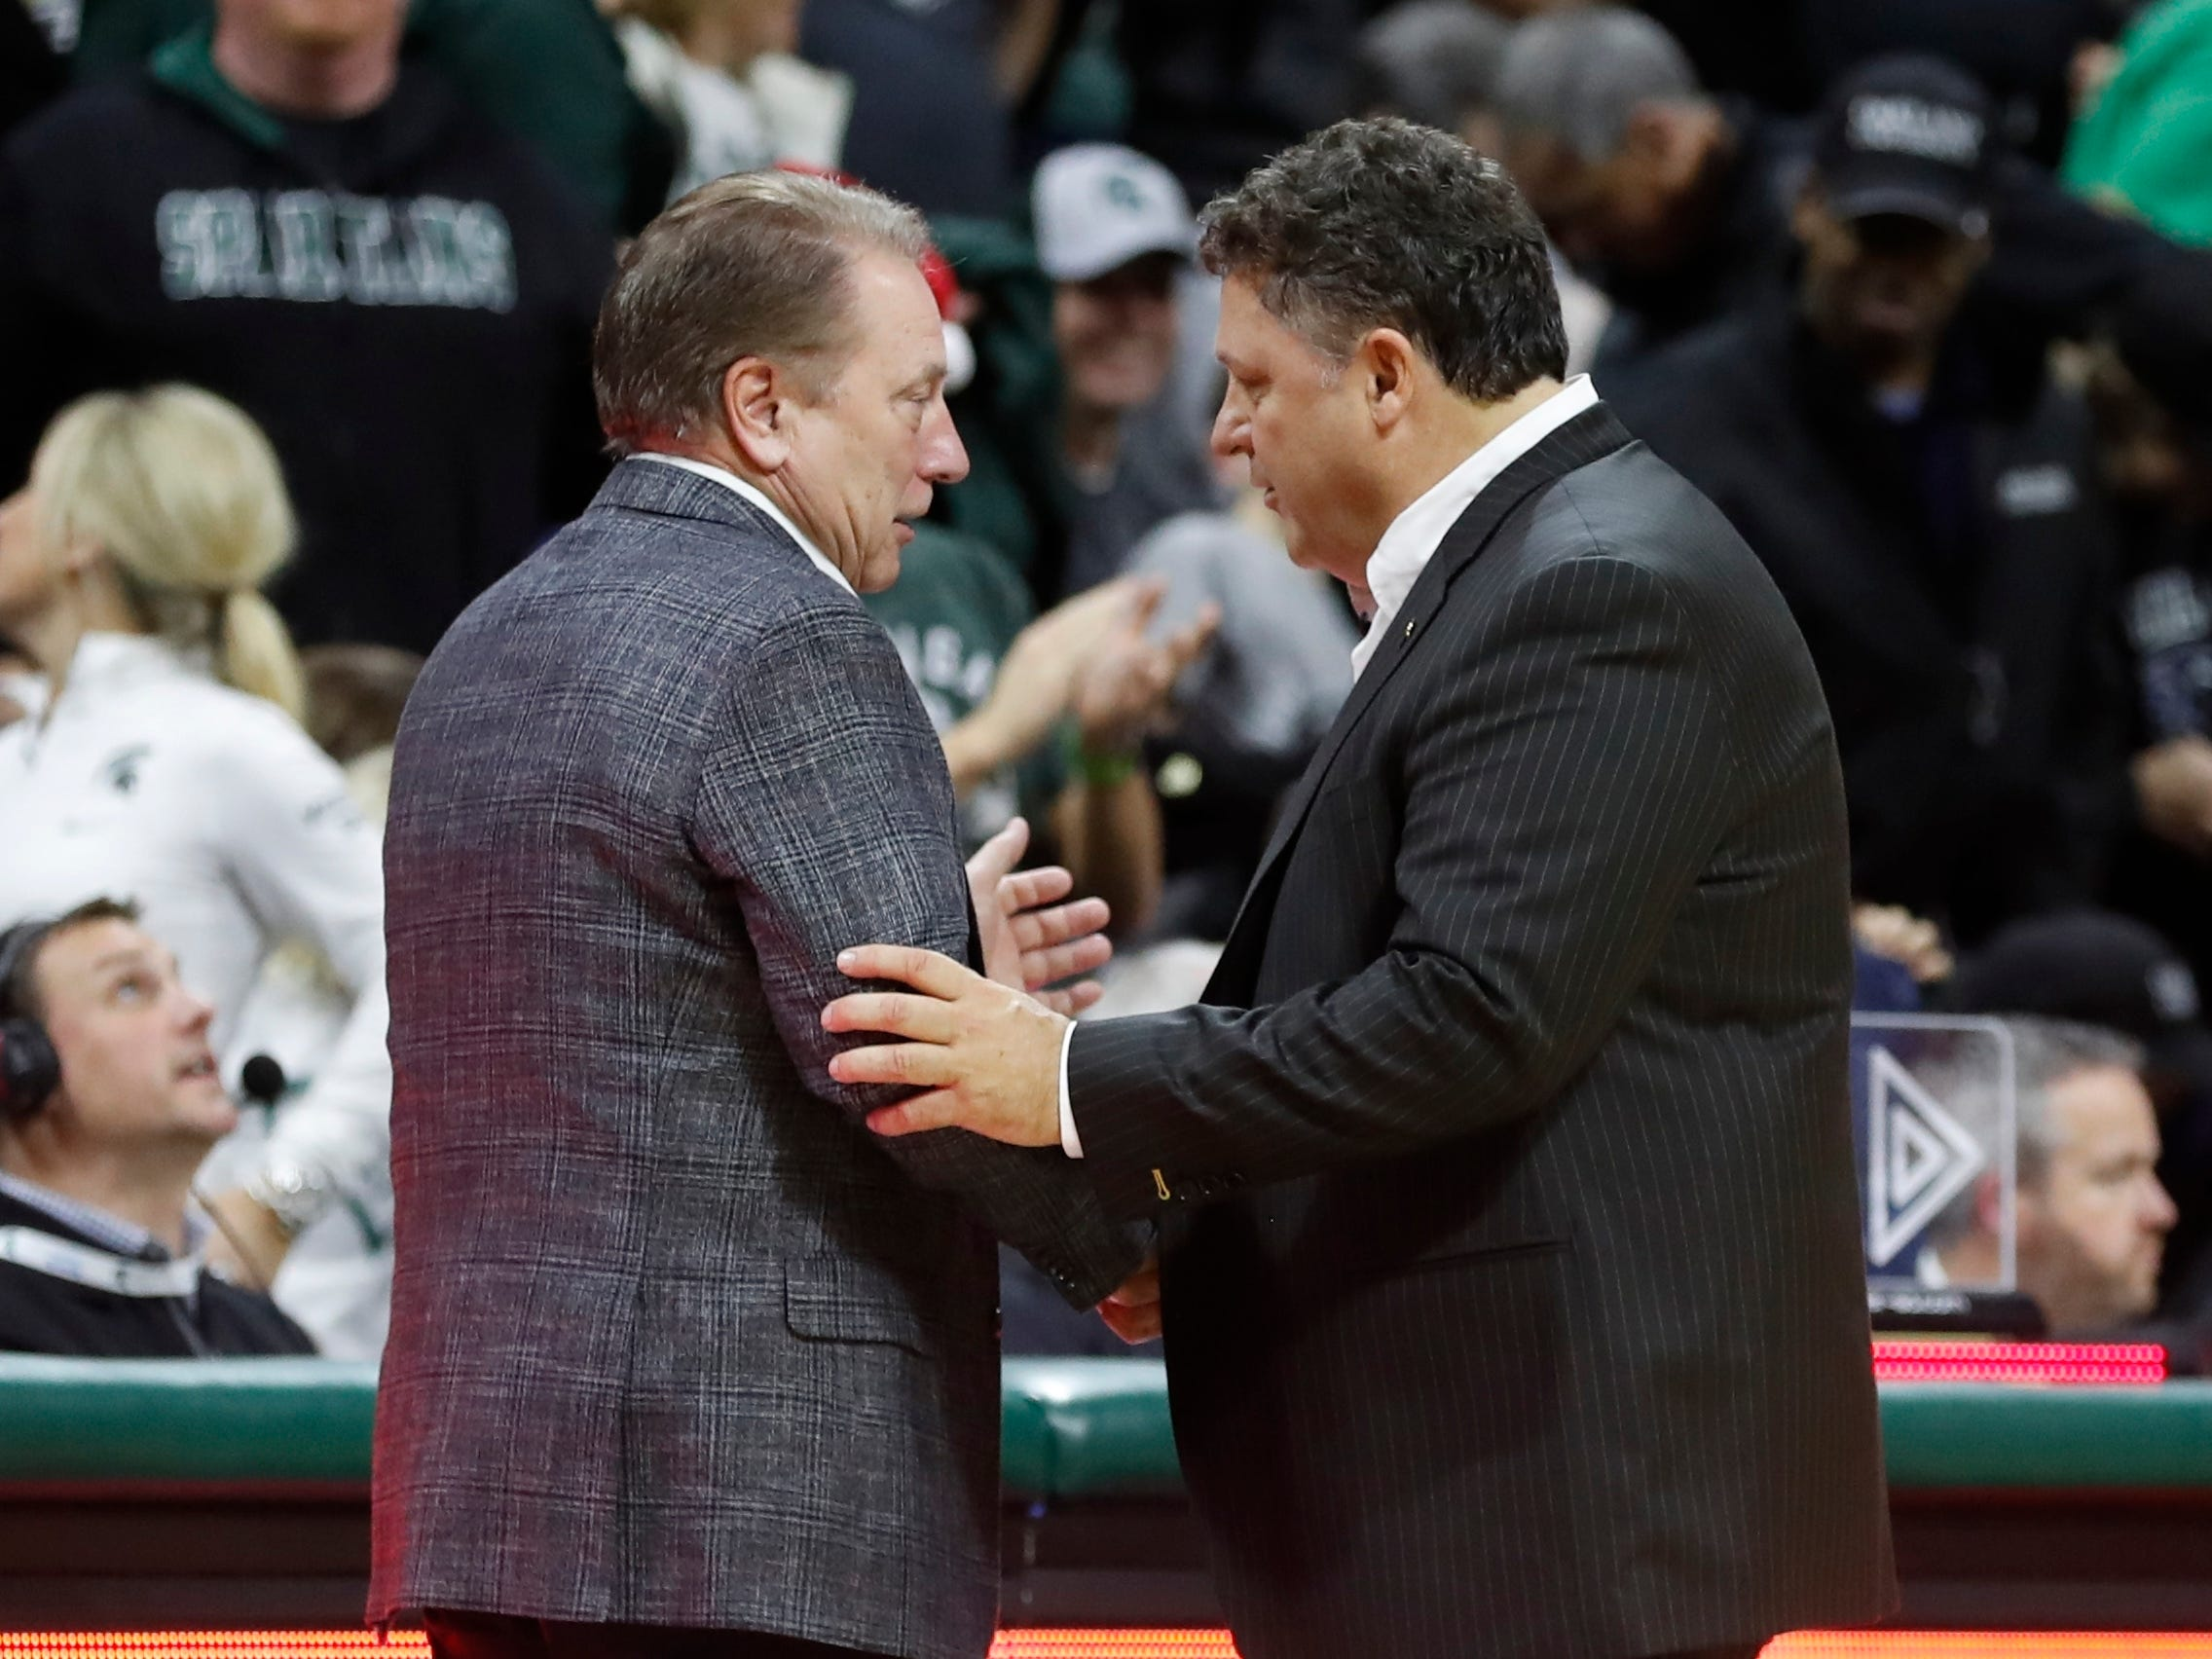 Michigan State head coach Tom Izzo, left, meets with Oakland head coach Greg Kampe after an NCAA college basketball game, Friday, Dec. 21, 2018, in East Lansing, Mich.